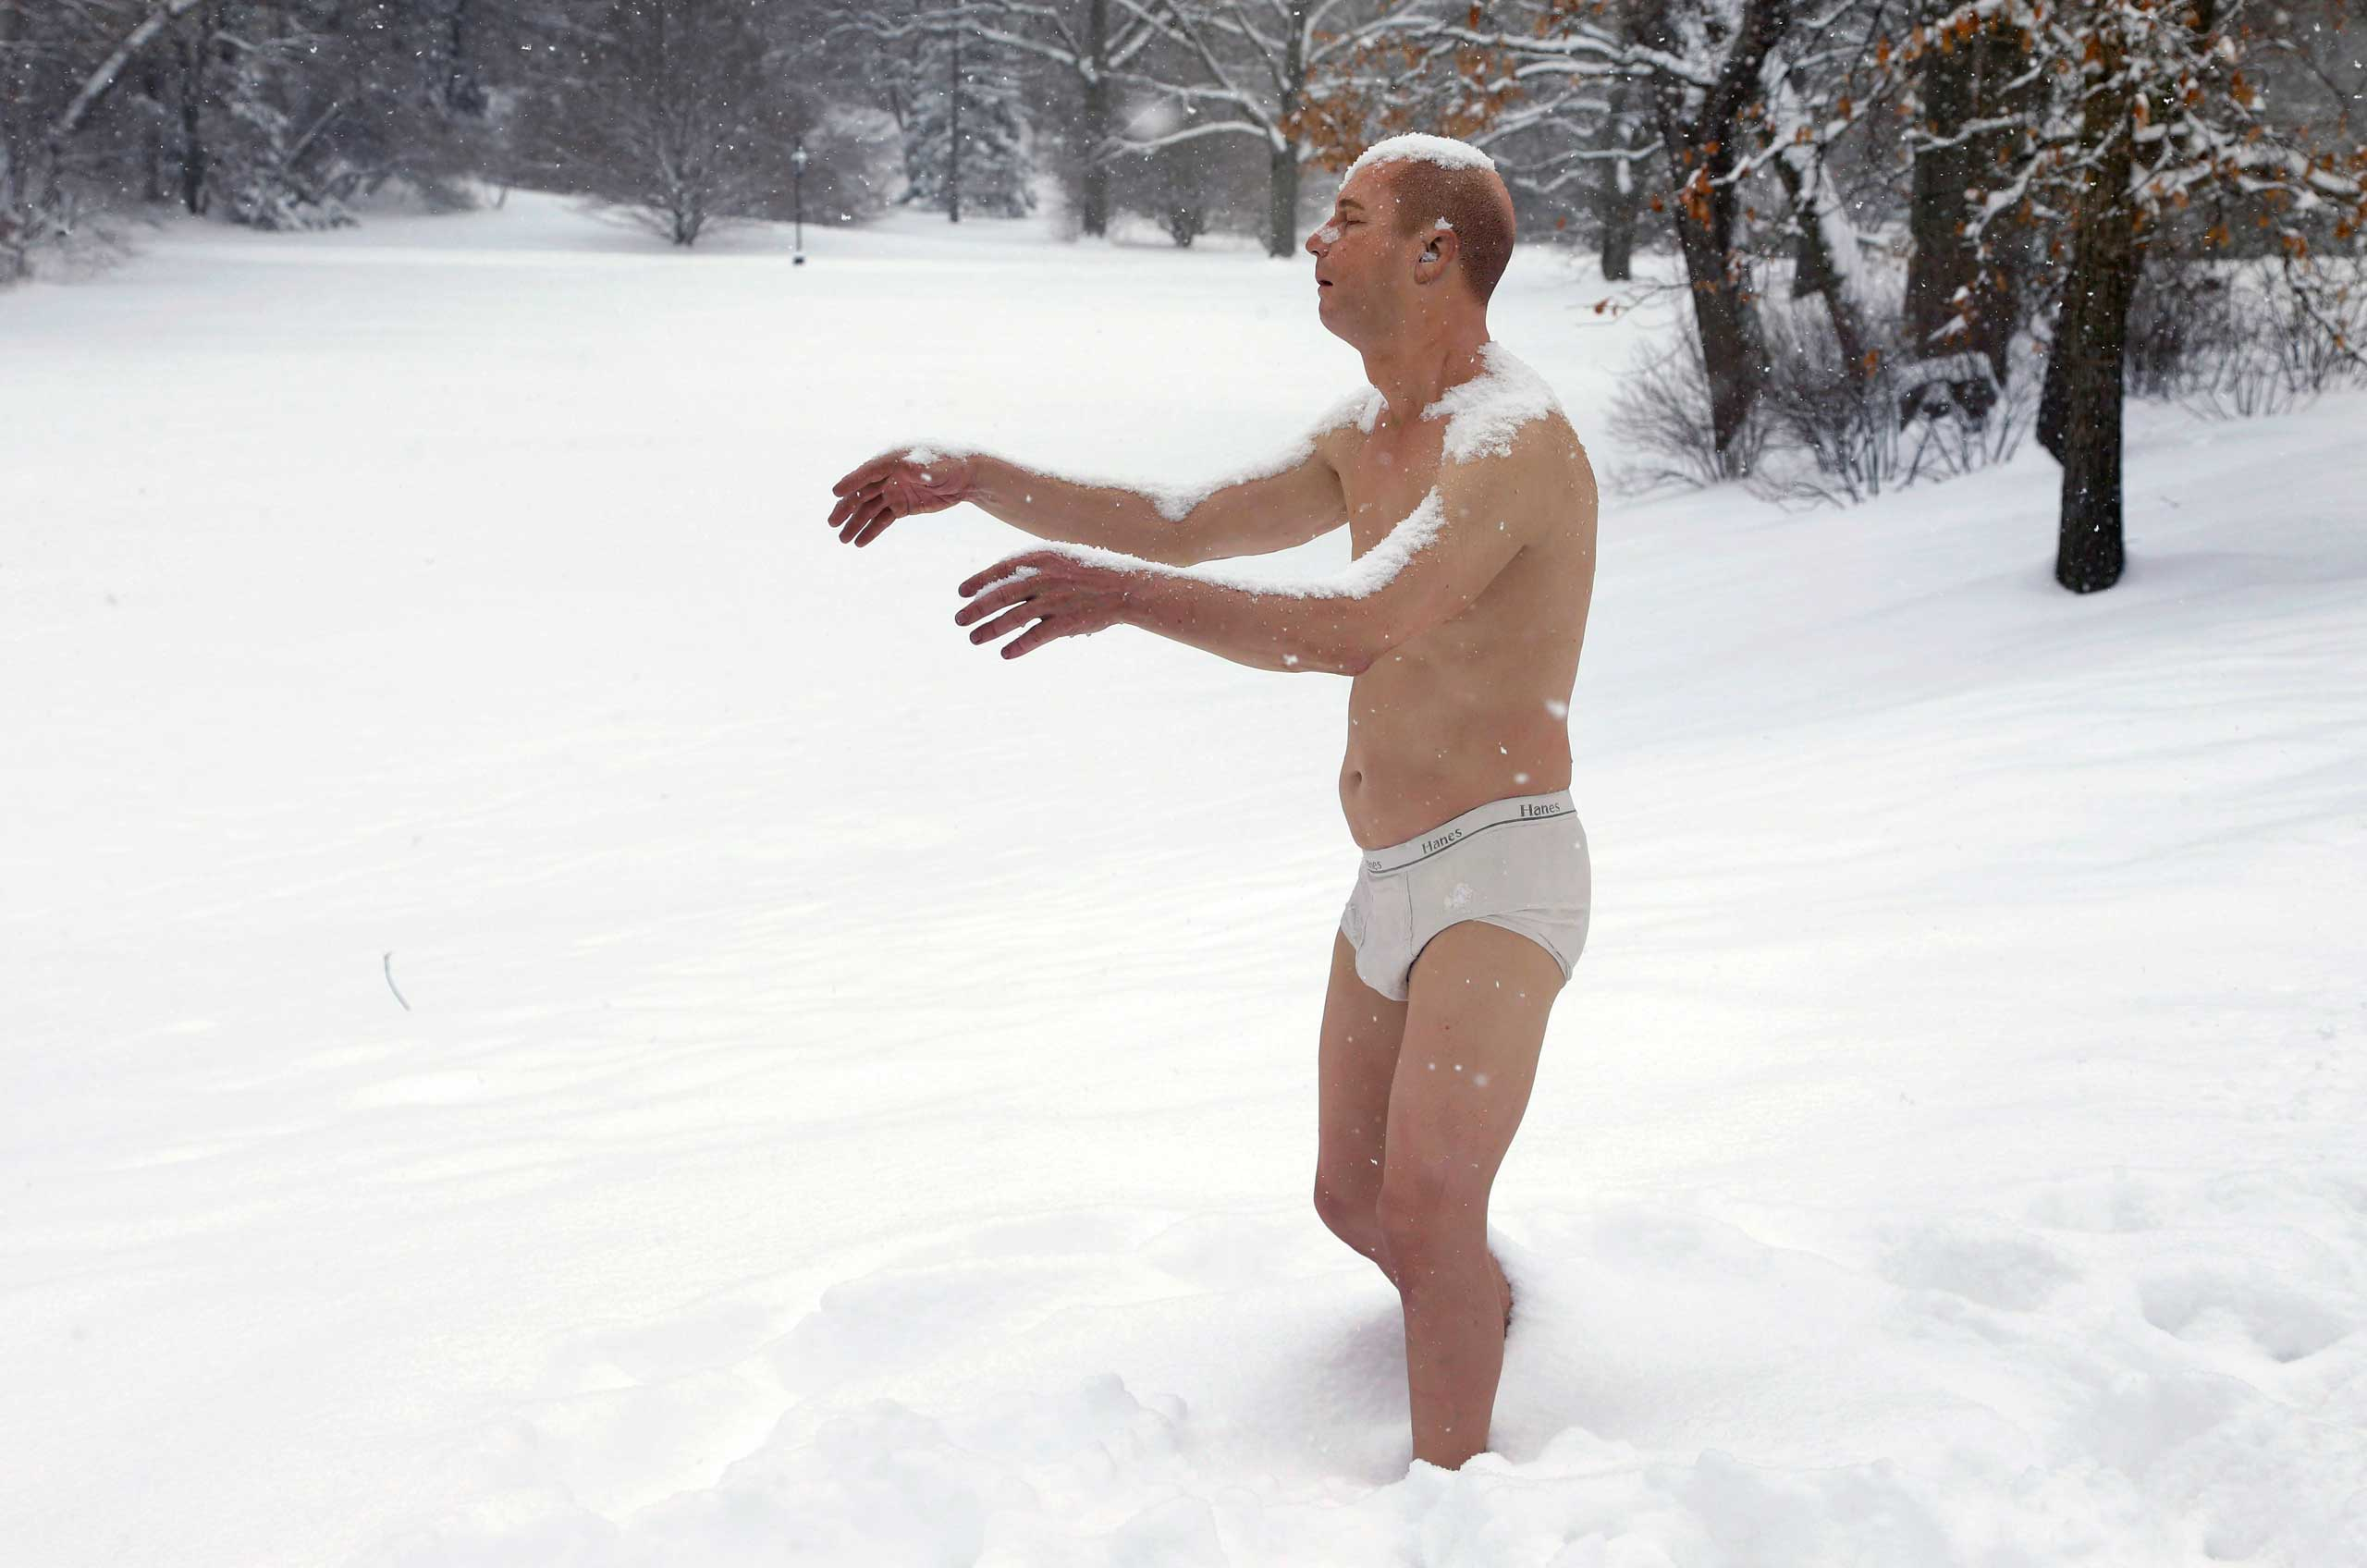 A statue of a man sleepwalking in his underpants is surrounded by snow on the campus of Wellesley College, in Wellesley, Mass., Feb. 5, 2014.